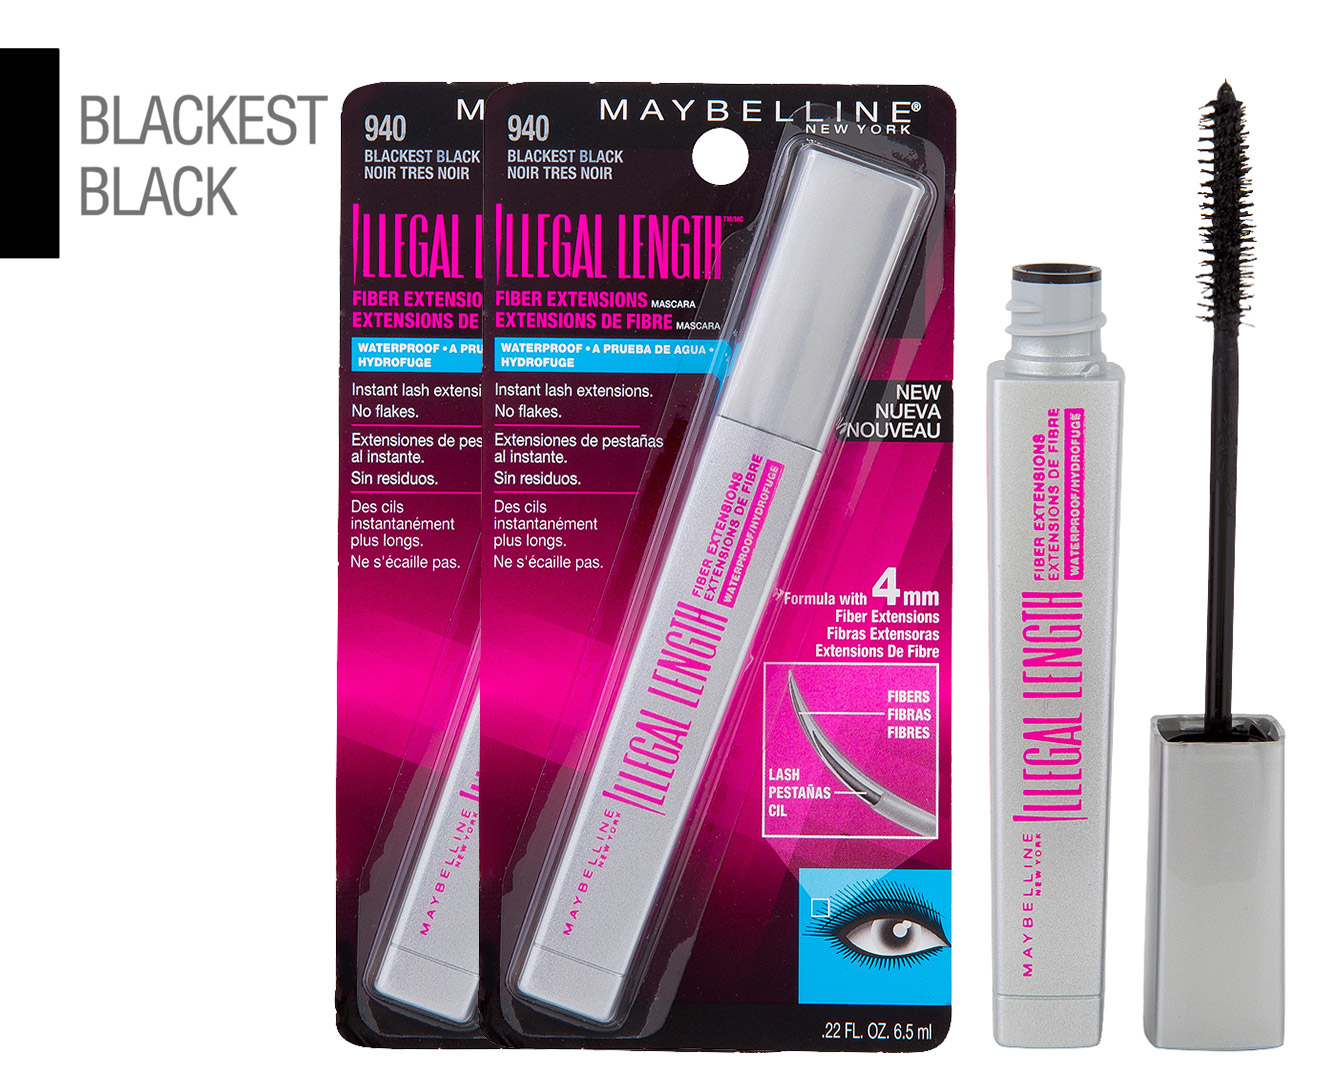 bfc198ca80b 2 x Maybelline Illegal Length Fiber Extensions Waterproof Mascara 6.5mL -  #940 Blackest Black | Catch.com.au